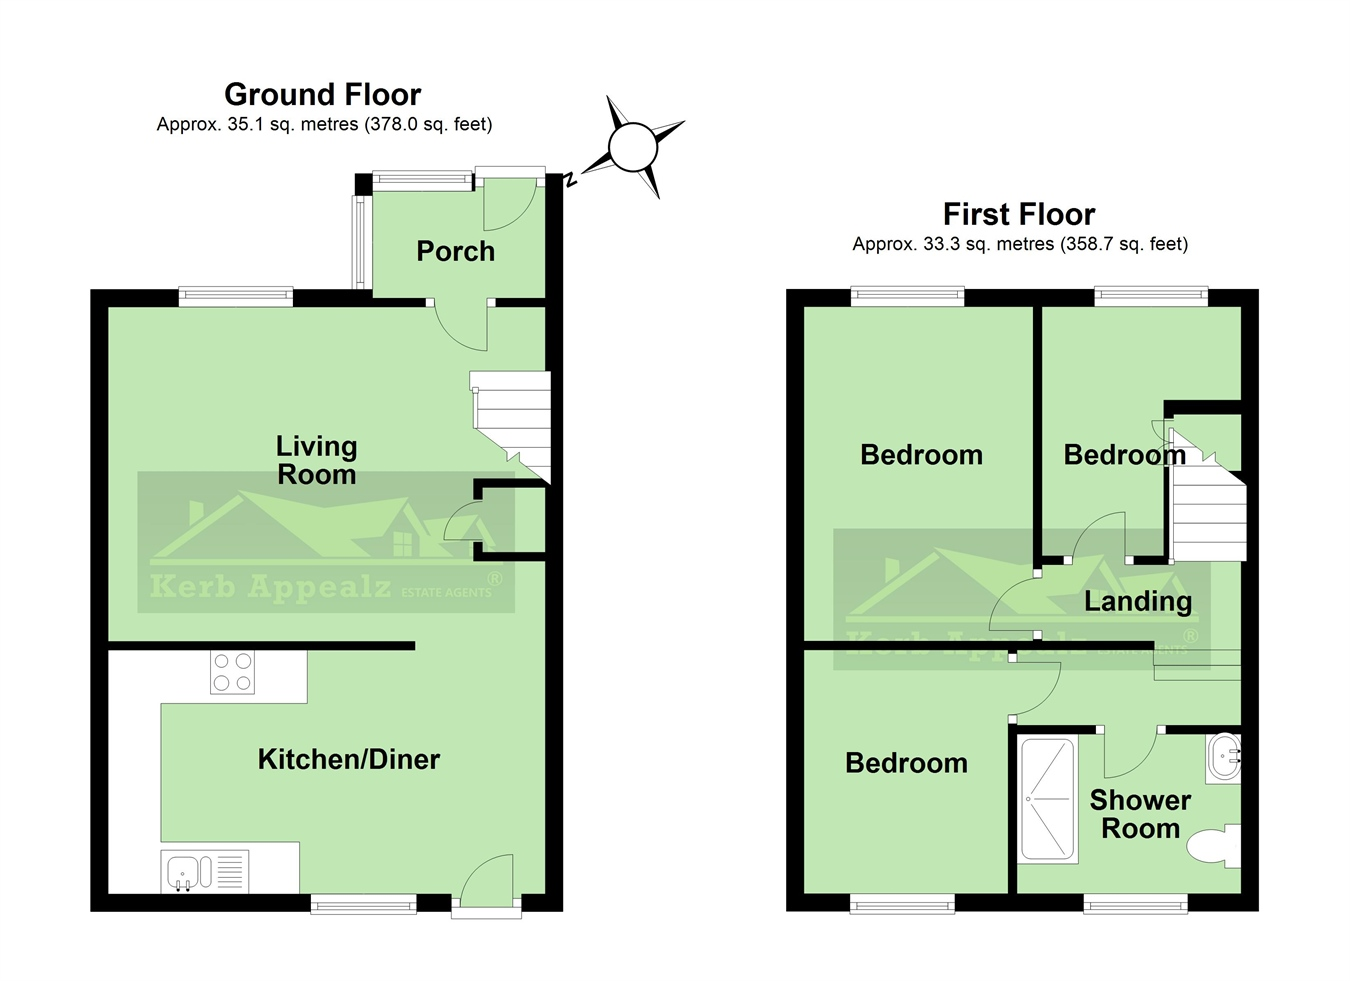 Floorplan 2 of  for sale in Camborne